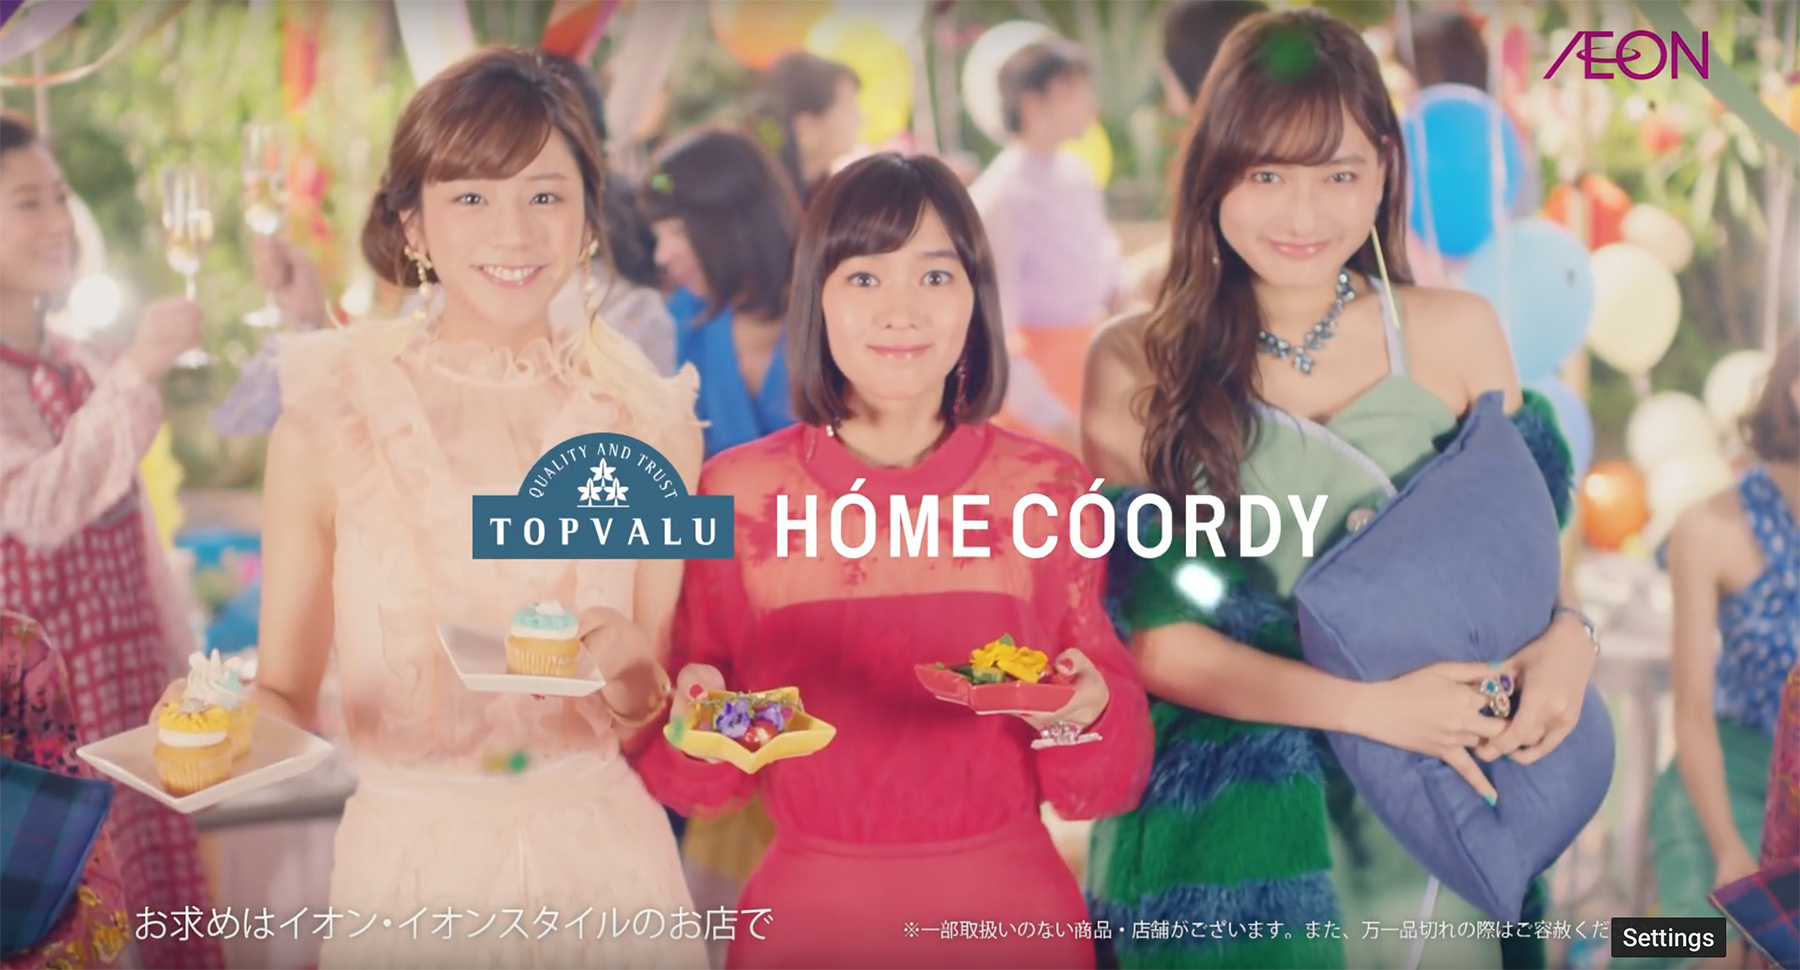 AEON HOME COORDY